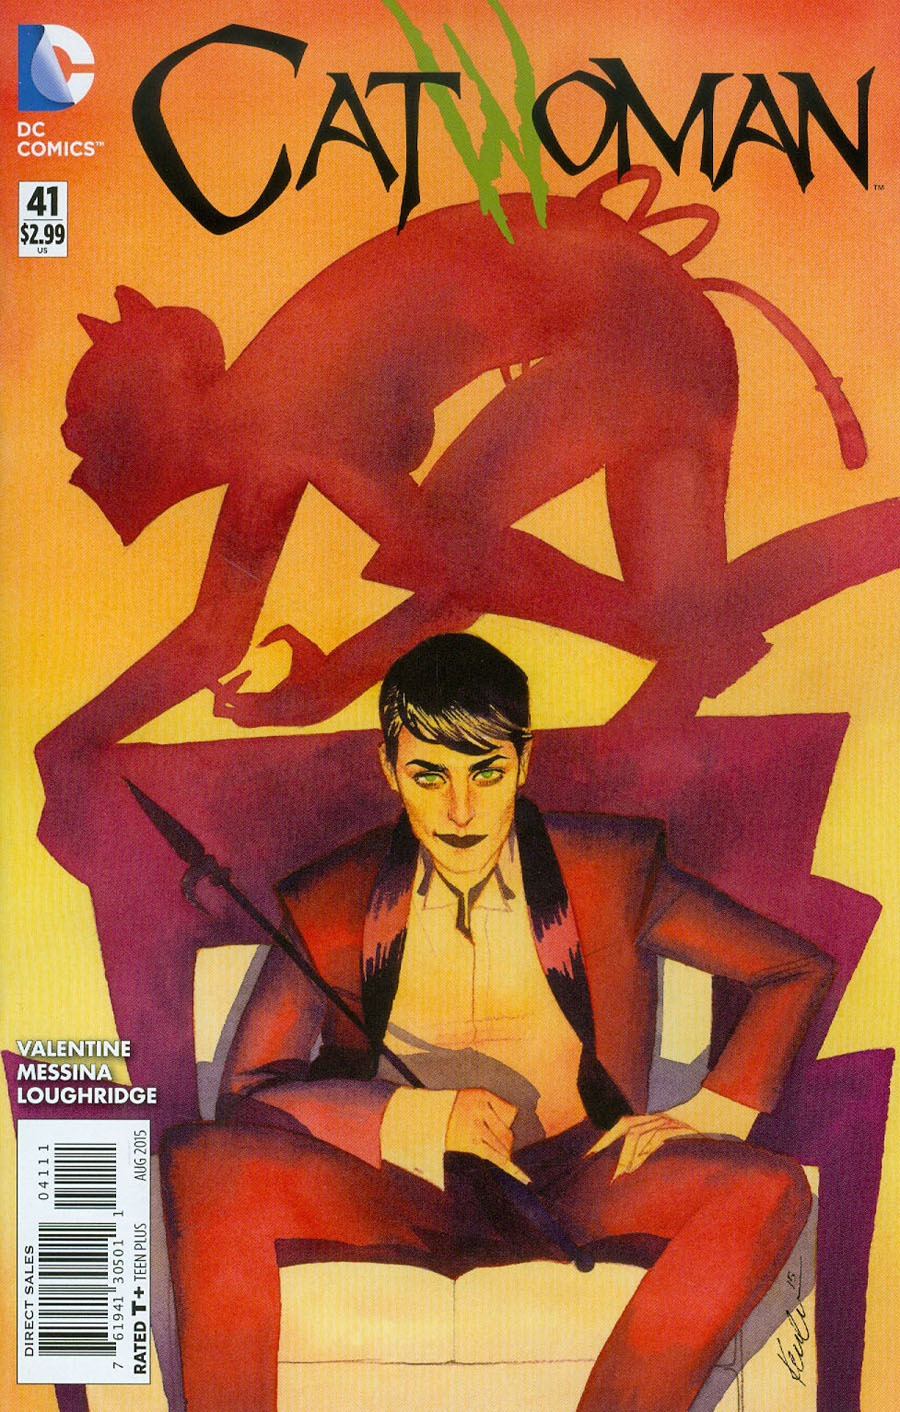 Catwoman Vol 4 #41 Cover A Regular Kevin Wada Cover